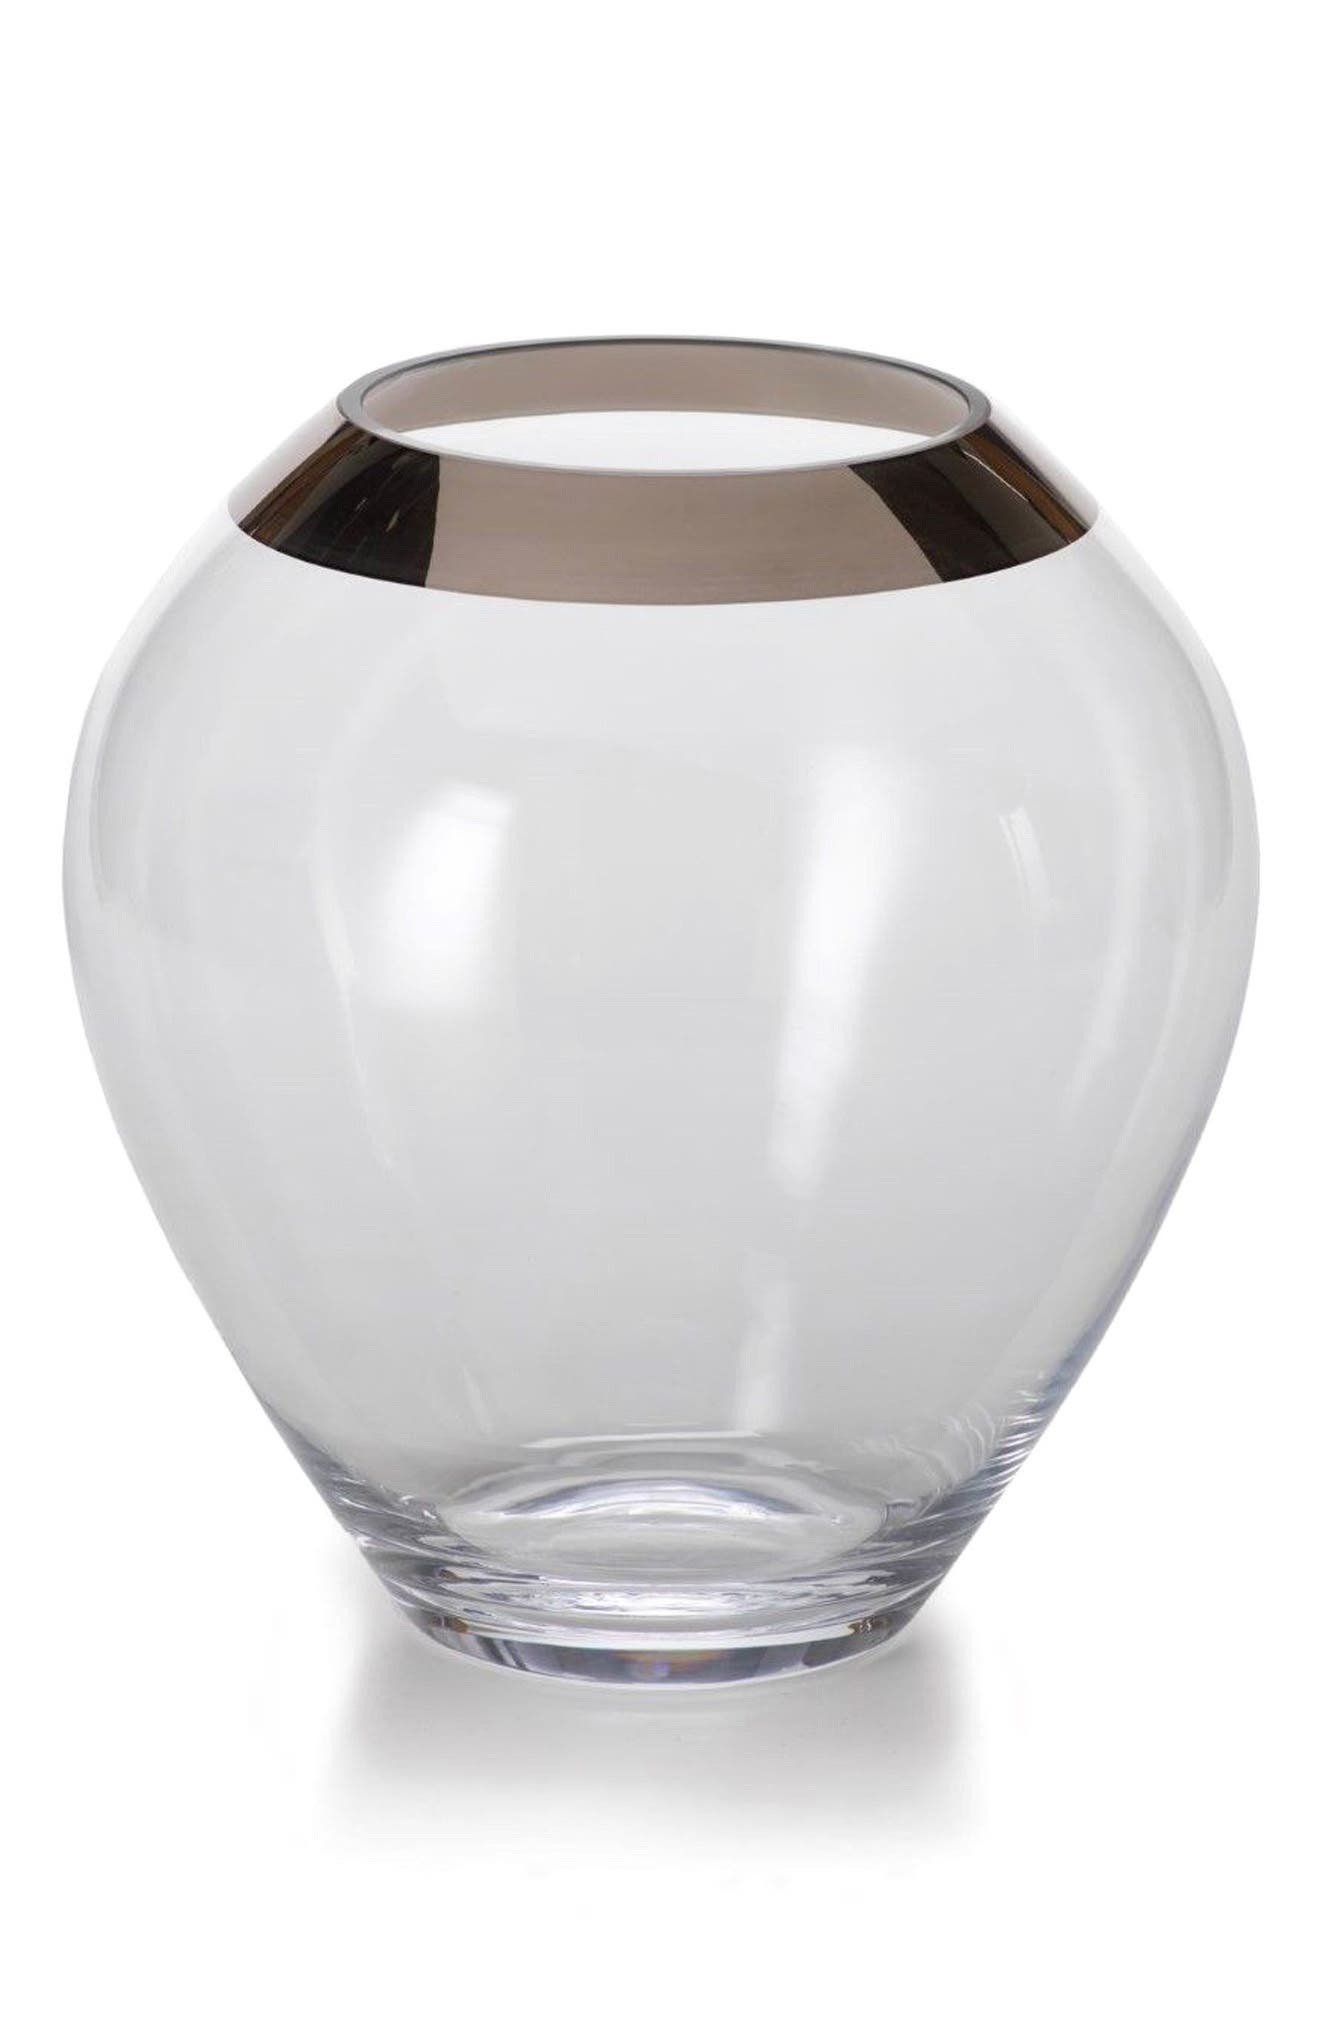 Zodax Medium Floris Vase